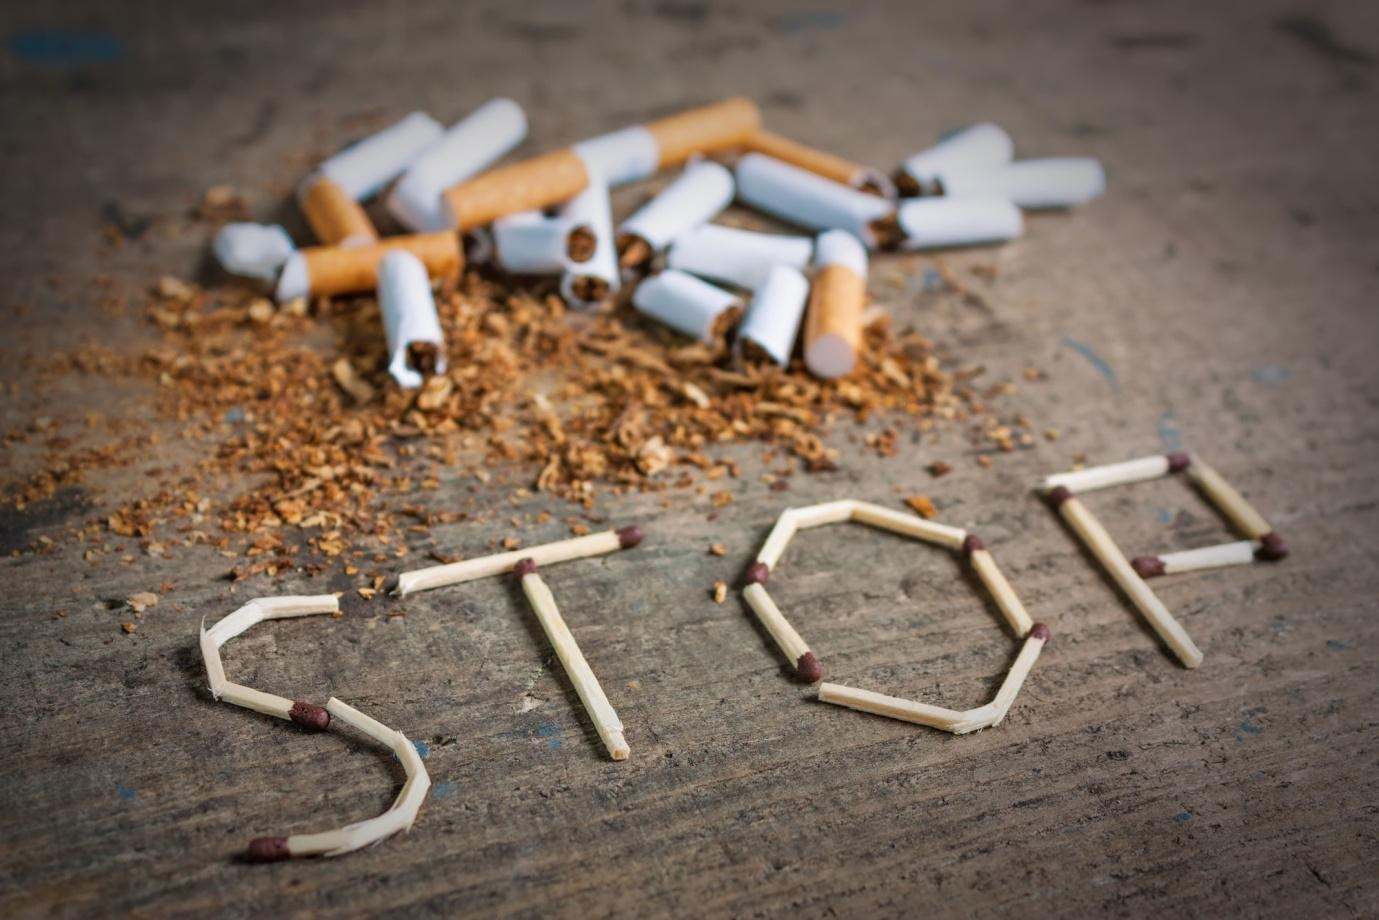 How to Stop Smoking Cigarettes: The 3 Best Tips